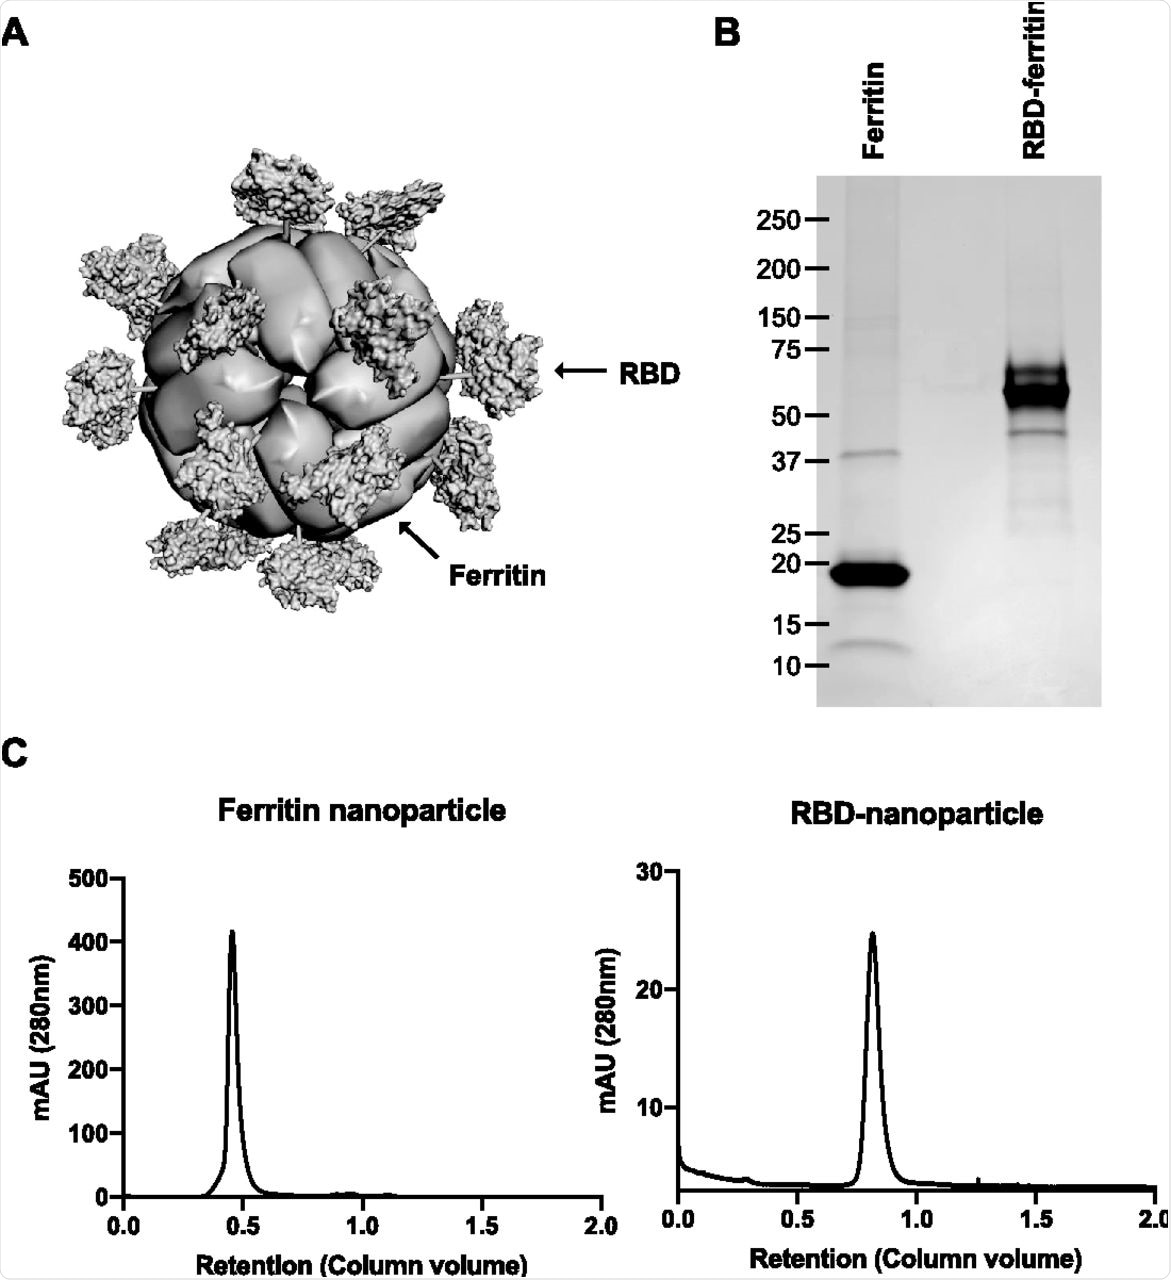 Design and purification of RBD-nanoparticles. (A) Computer-assisted modeling of an RBD-nanoparticle based on previously solved structures of H. pylori ferritin (PDB accession no. 3EGM) and SARS-CoV-2 RBD (PDB accession no. 7JMP). The RBD forms radial projections on a 3-fold axis point of the fully assembled nanoparticle. (B) Coomassie blue staining of purified ferritin-nanoparticles and RBD-nanoparticles following SDS-PAGE. (C) Size exclusion chromatography peaks of the concentrated supernatants from HEK293T cells transfected with plasmids encoding secreted ferritin-nanoparticles or RBD-nanoparticles. The supernatants were concentrated with 100-kDa-MWCO and 500-kDa-MWCO filters on a TFF system and loaded onto Superdex 200 Increase 10/300 GL and HiPrep 16/60 Sephacryl S-500 HR gel filtration columns on a Bio-Rad NGC chromatography system, respectively. mAU, arbitrary units (in thousands).